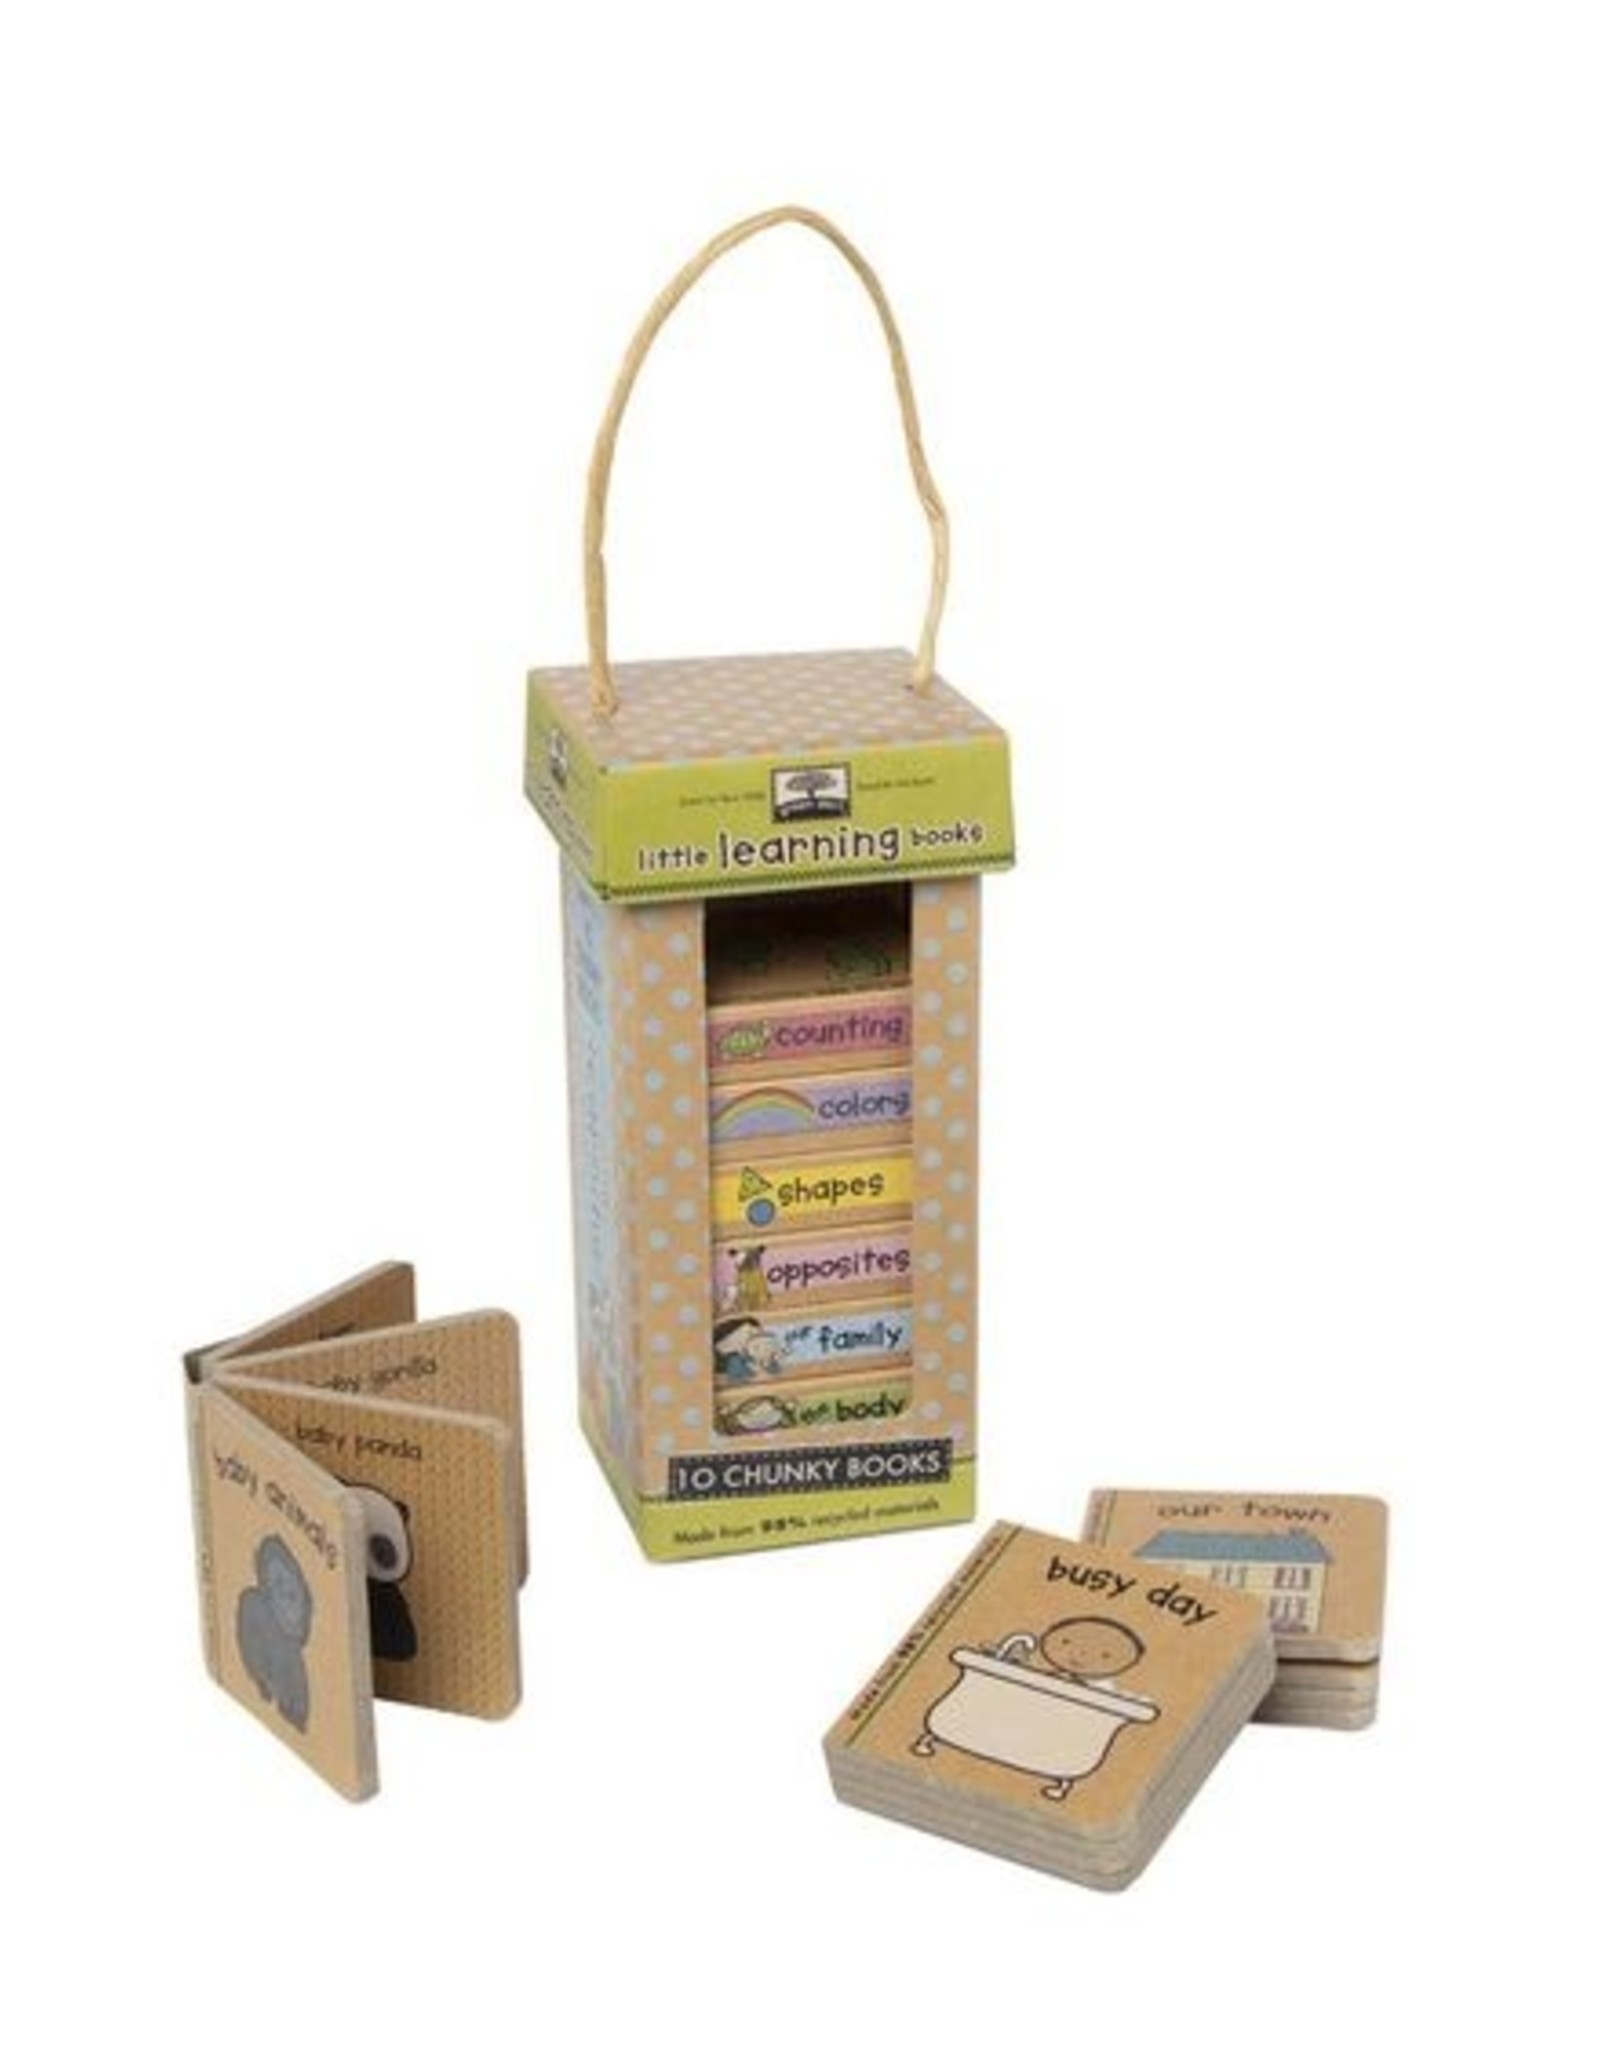 Melissa & Doug NP Book Tower: Little Learning Books